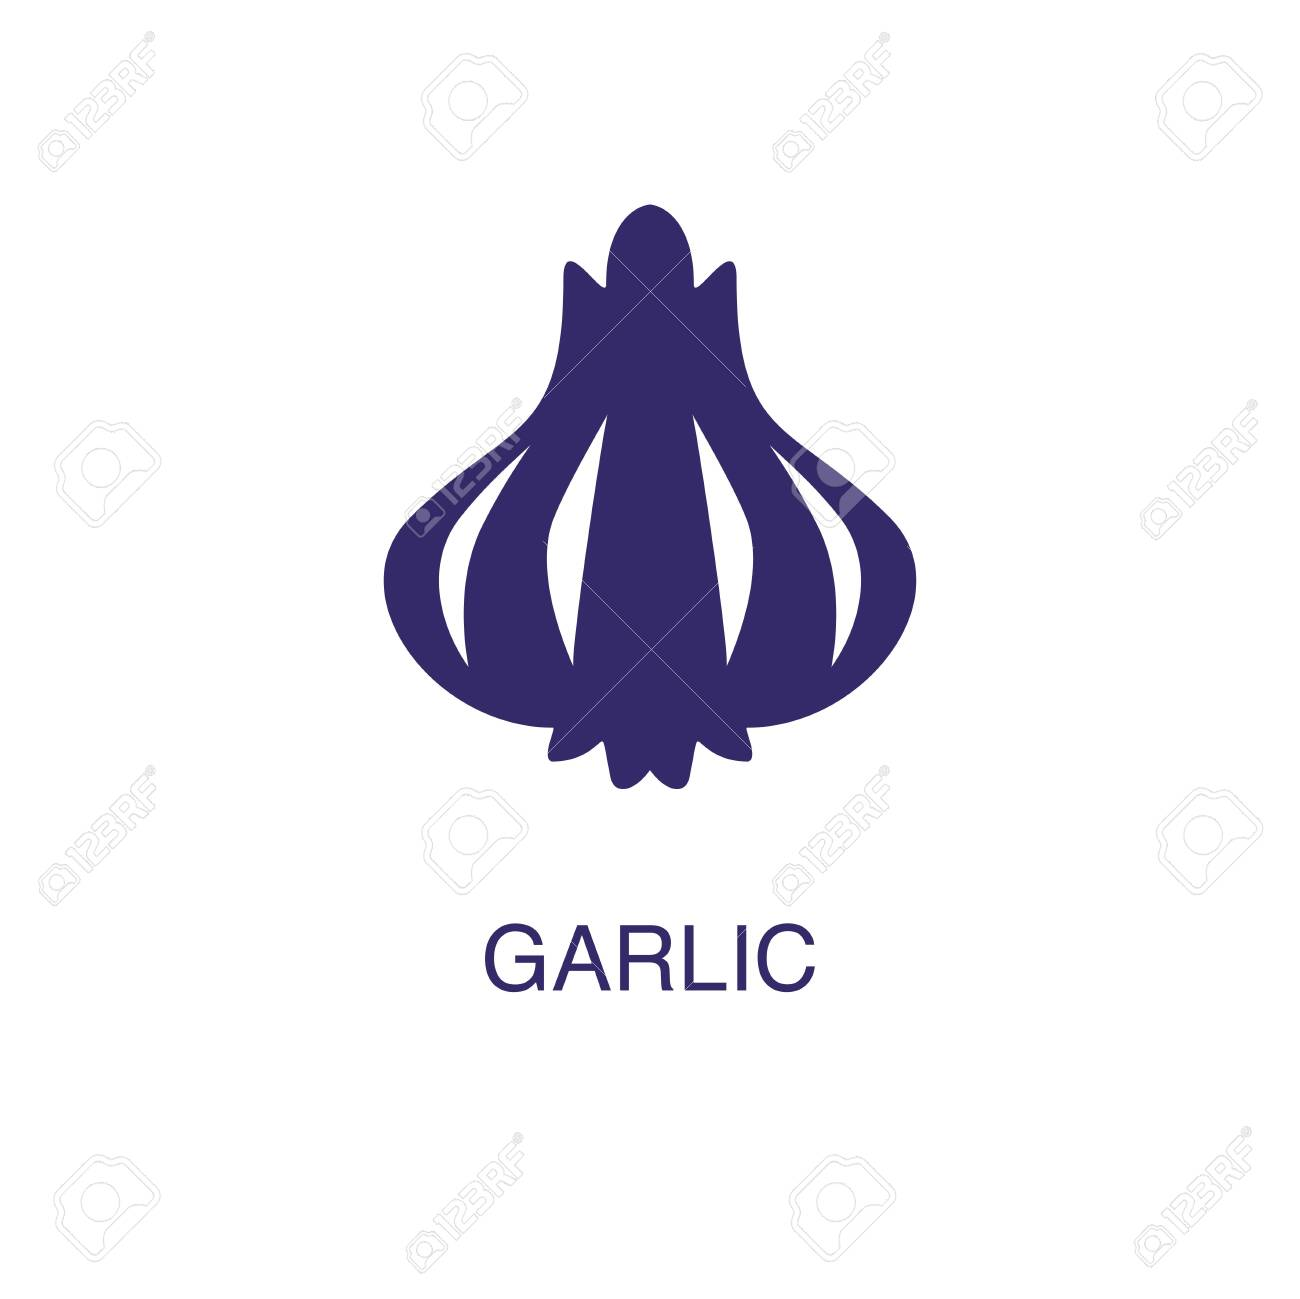 Garlic element in flat simple style on white background. Garlic icon, with text name concept template - 134450715